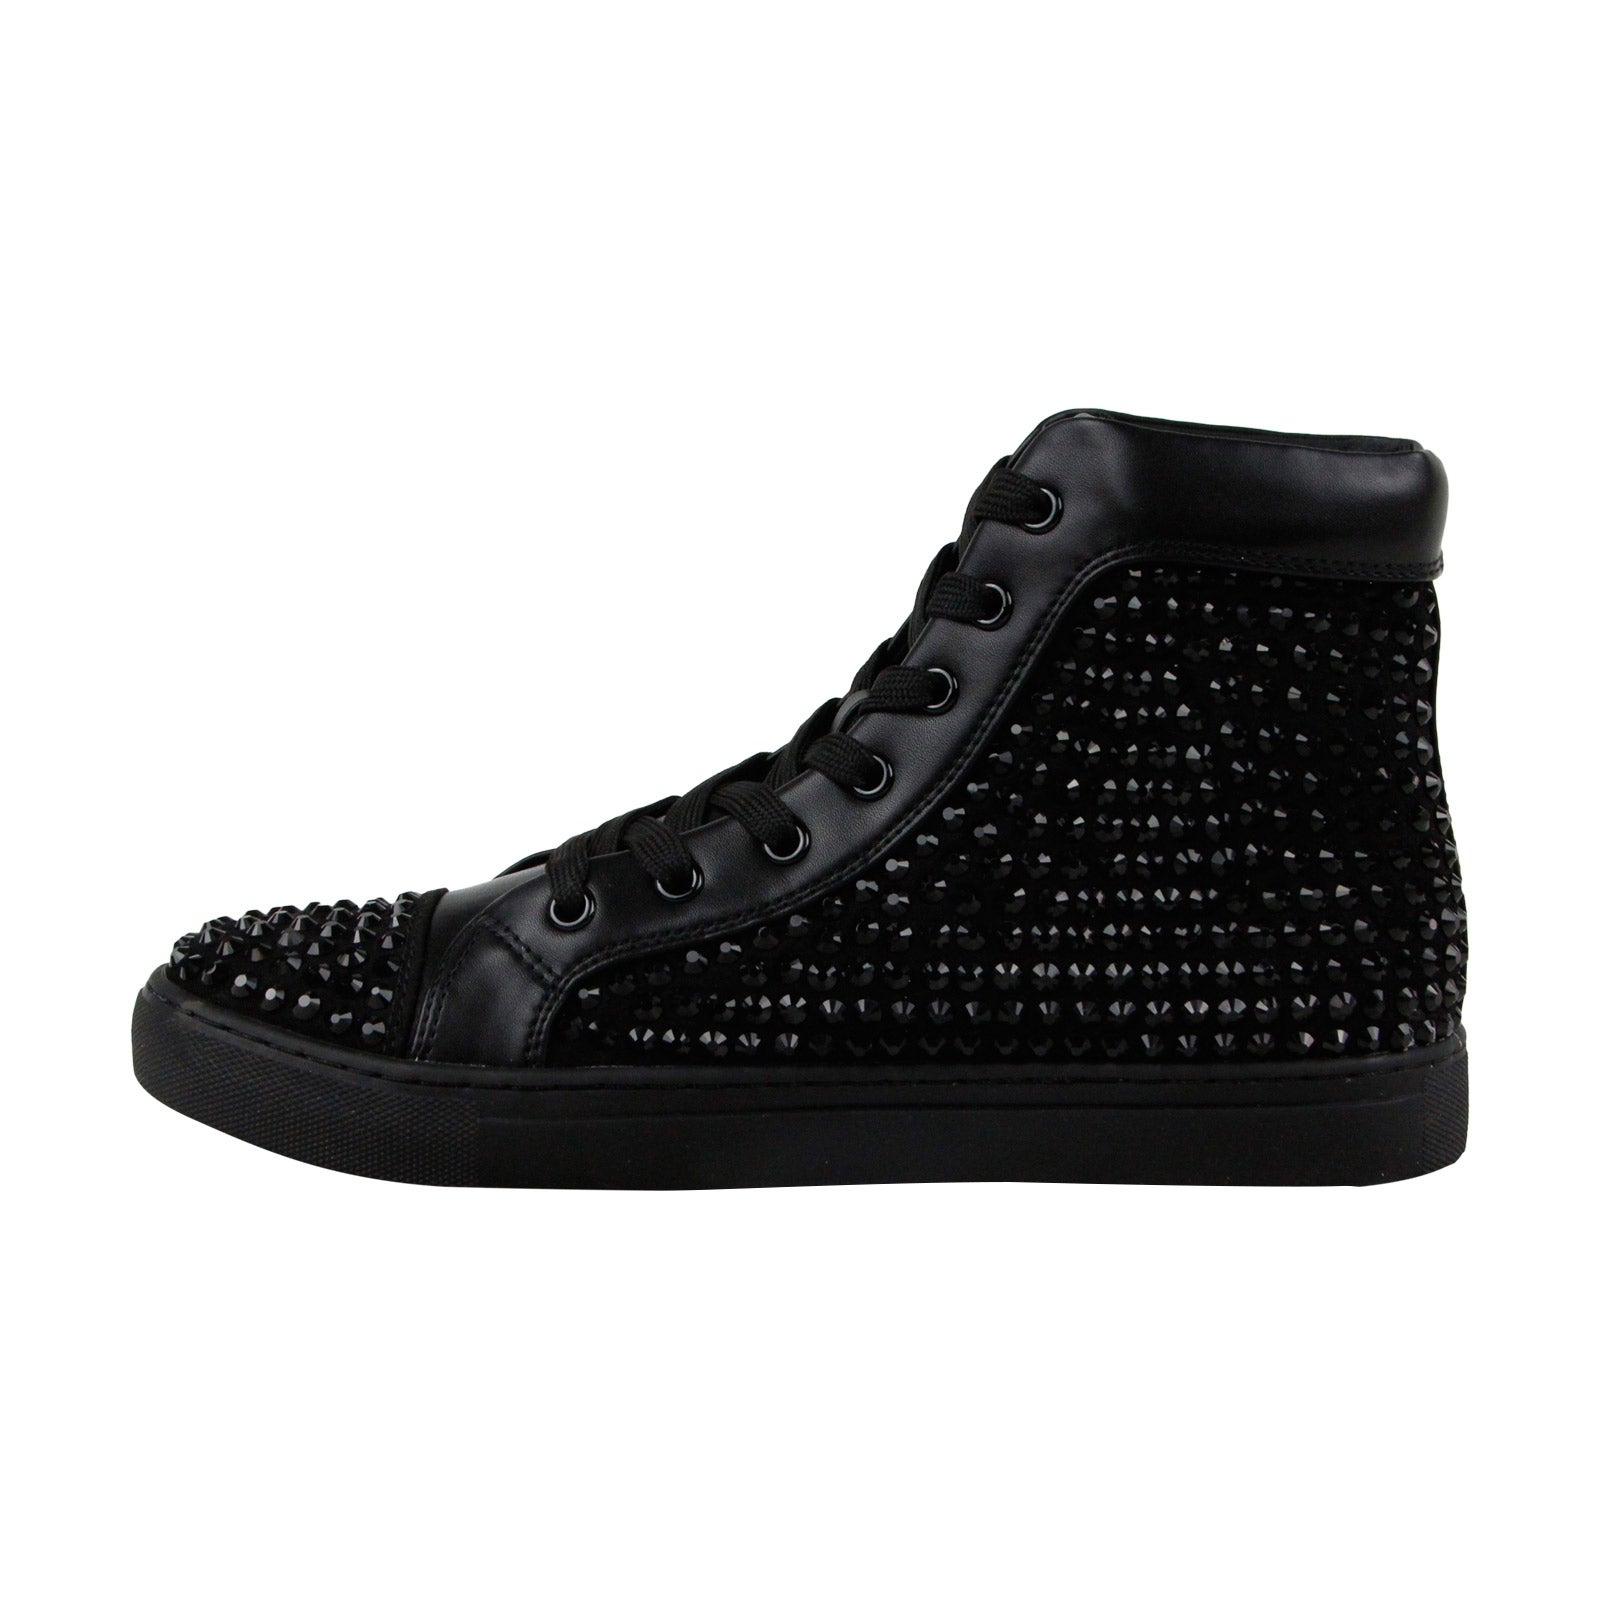 60840c39fa4 Shop Steve Madden Crescent Mens Black Leather High Top Lace Up Sneakers  Shoes - Free Shipping On Orders Over  45 - Overstock - 21729669